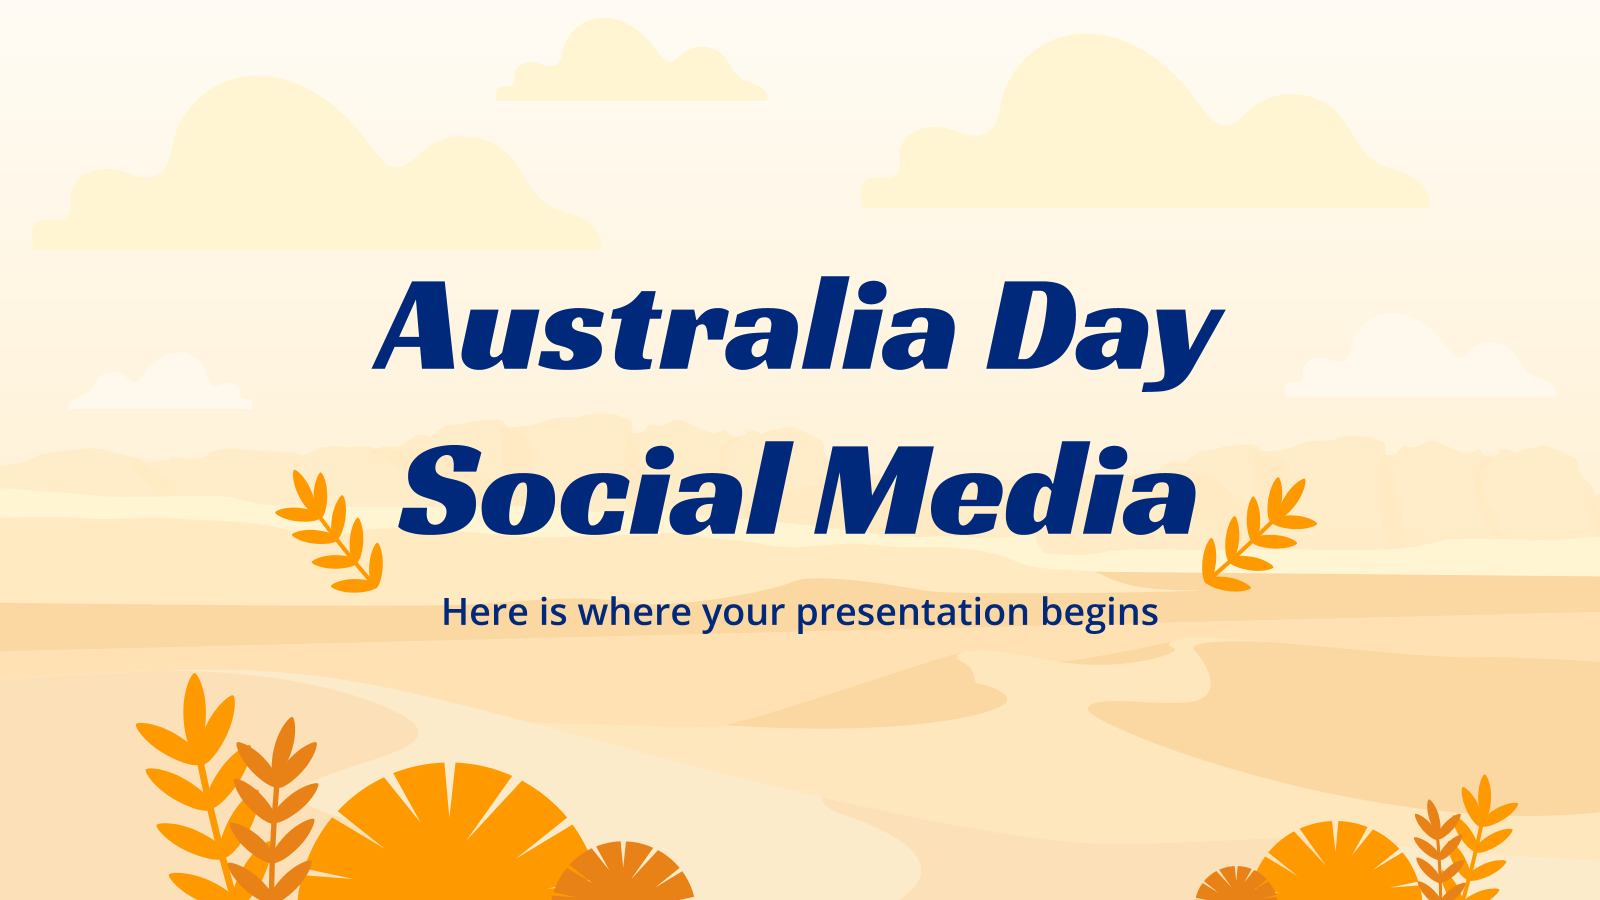 Australia Day Social Media presentation template